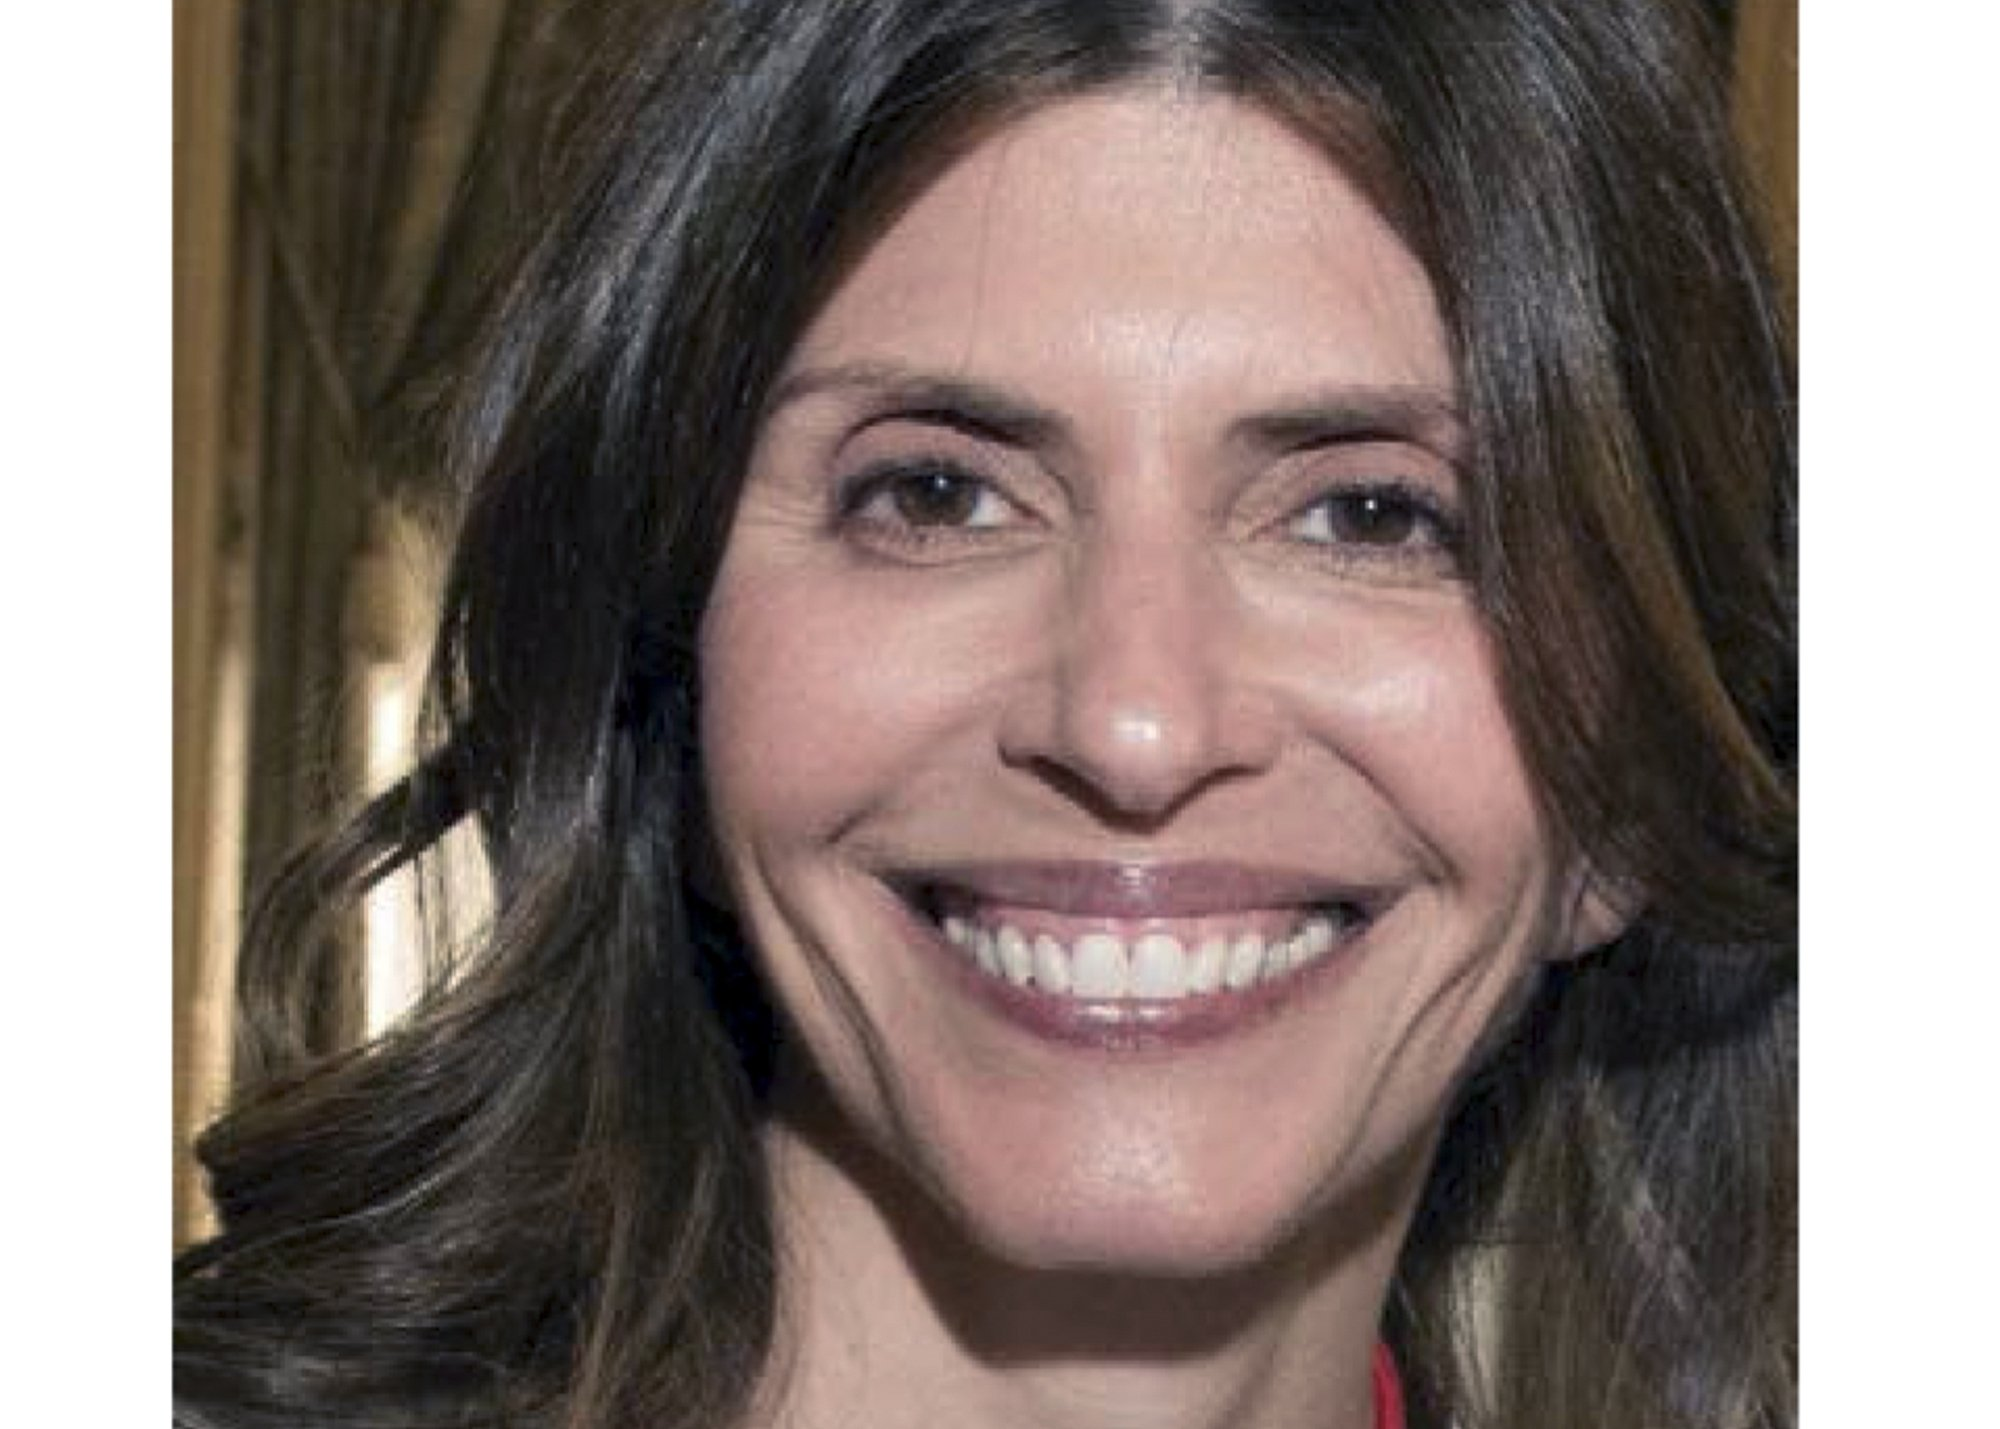 Jennifer Dulos case highlights common scourge, advocates say